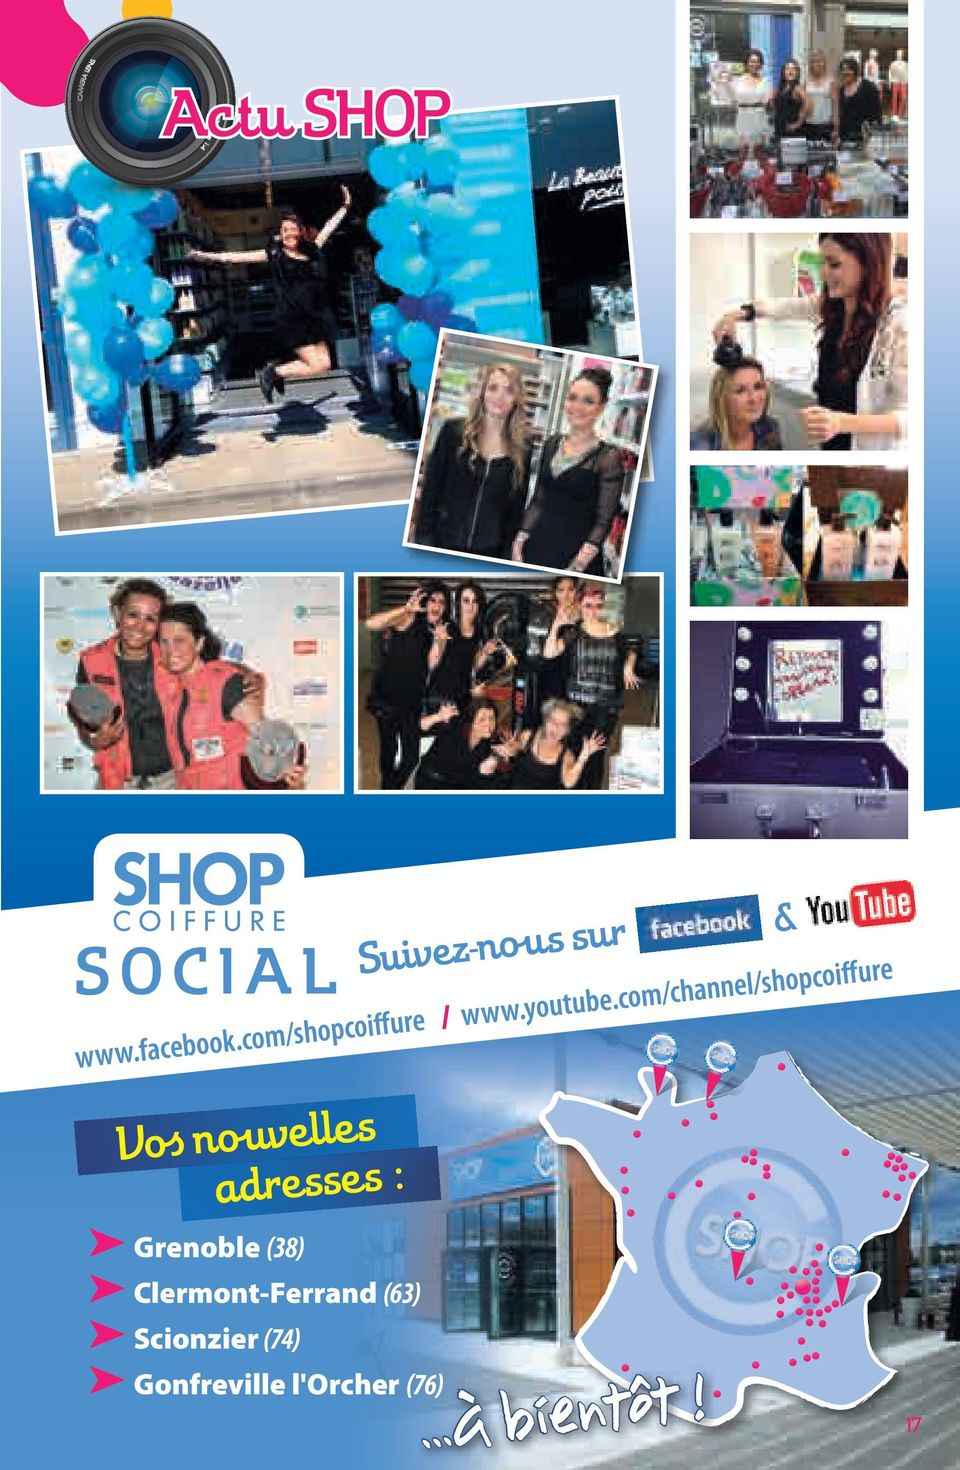 com/channel/shopcoiffure Vo s no uvelles adresses :